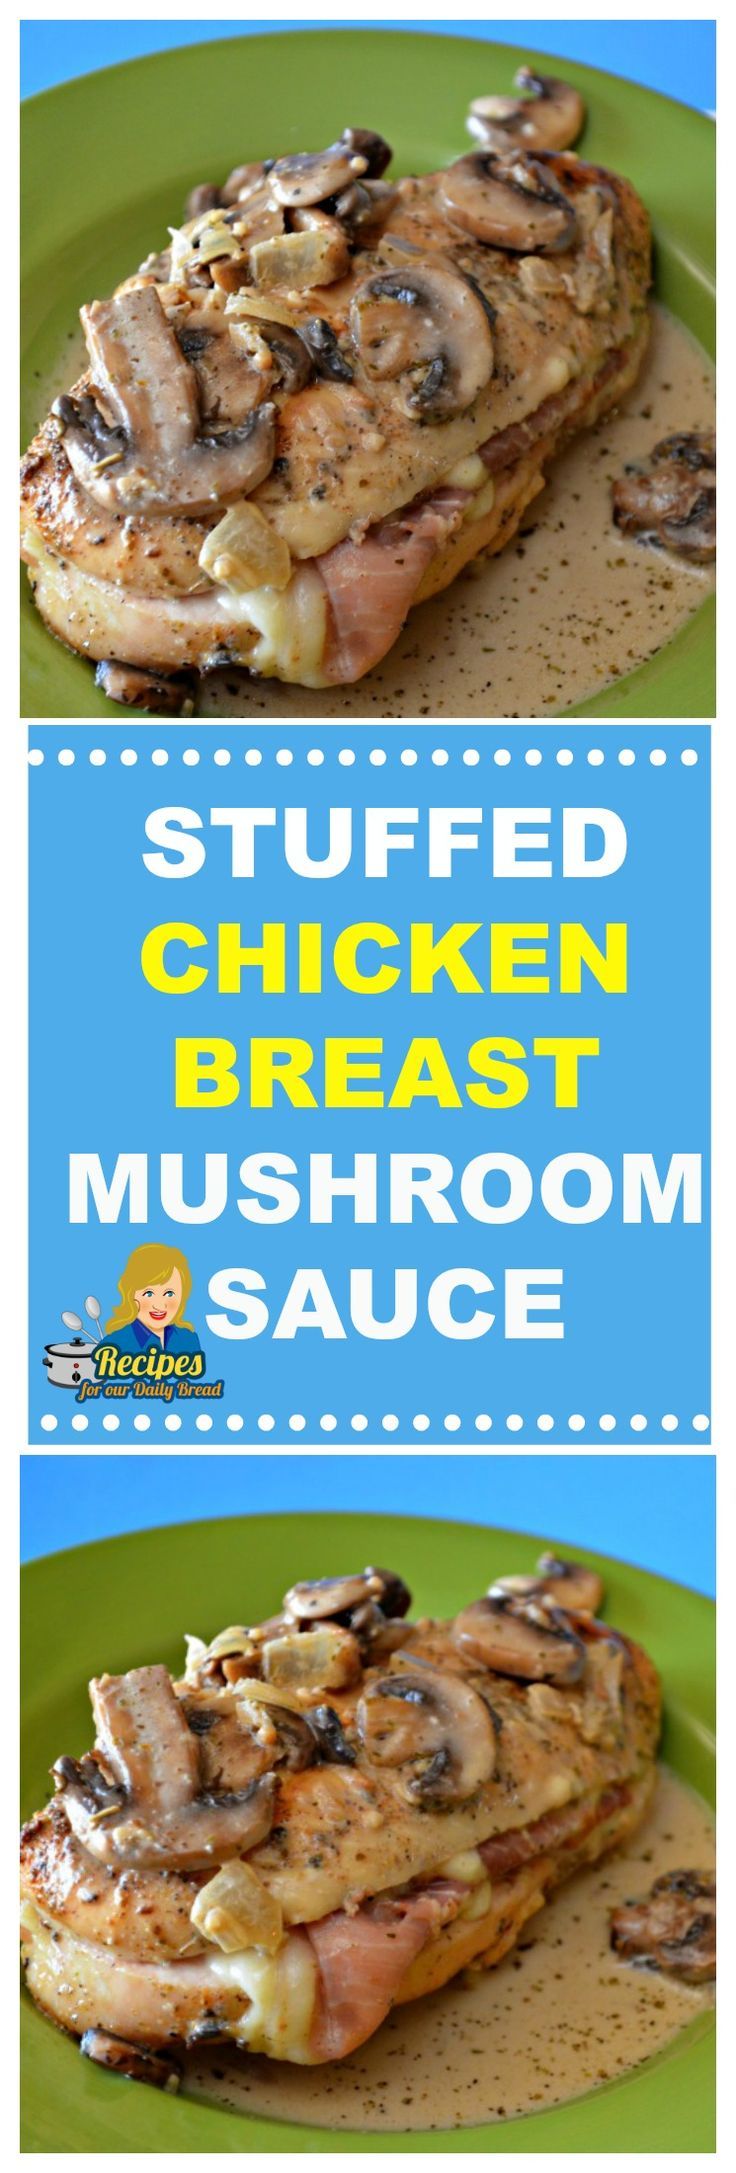 how to make creamy mushroom sauce with chicken